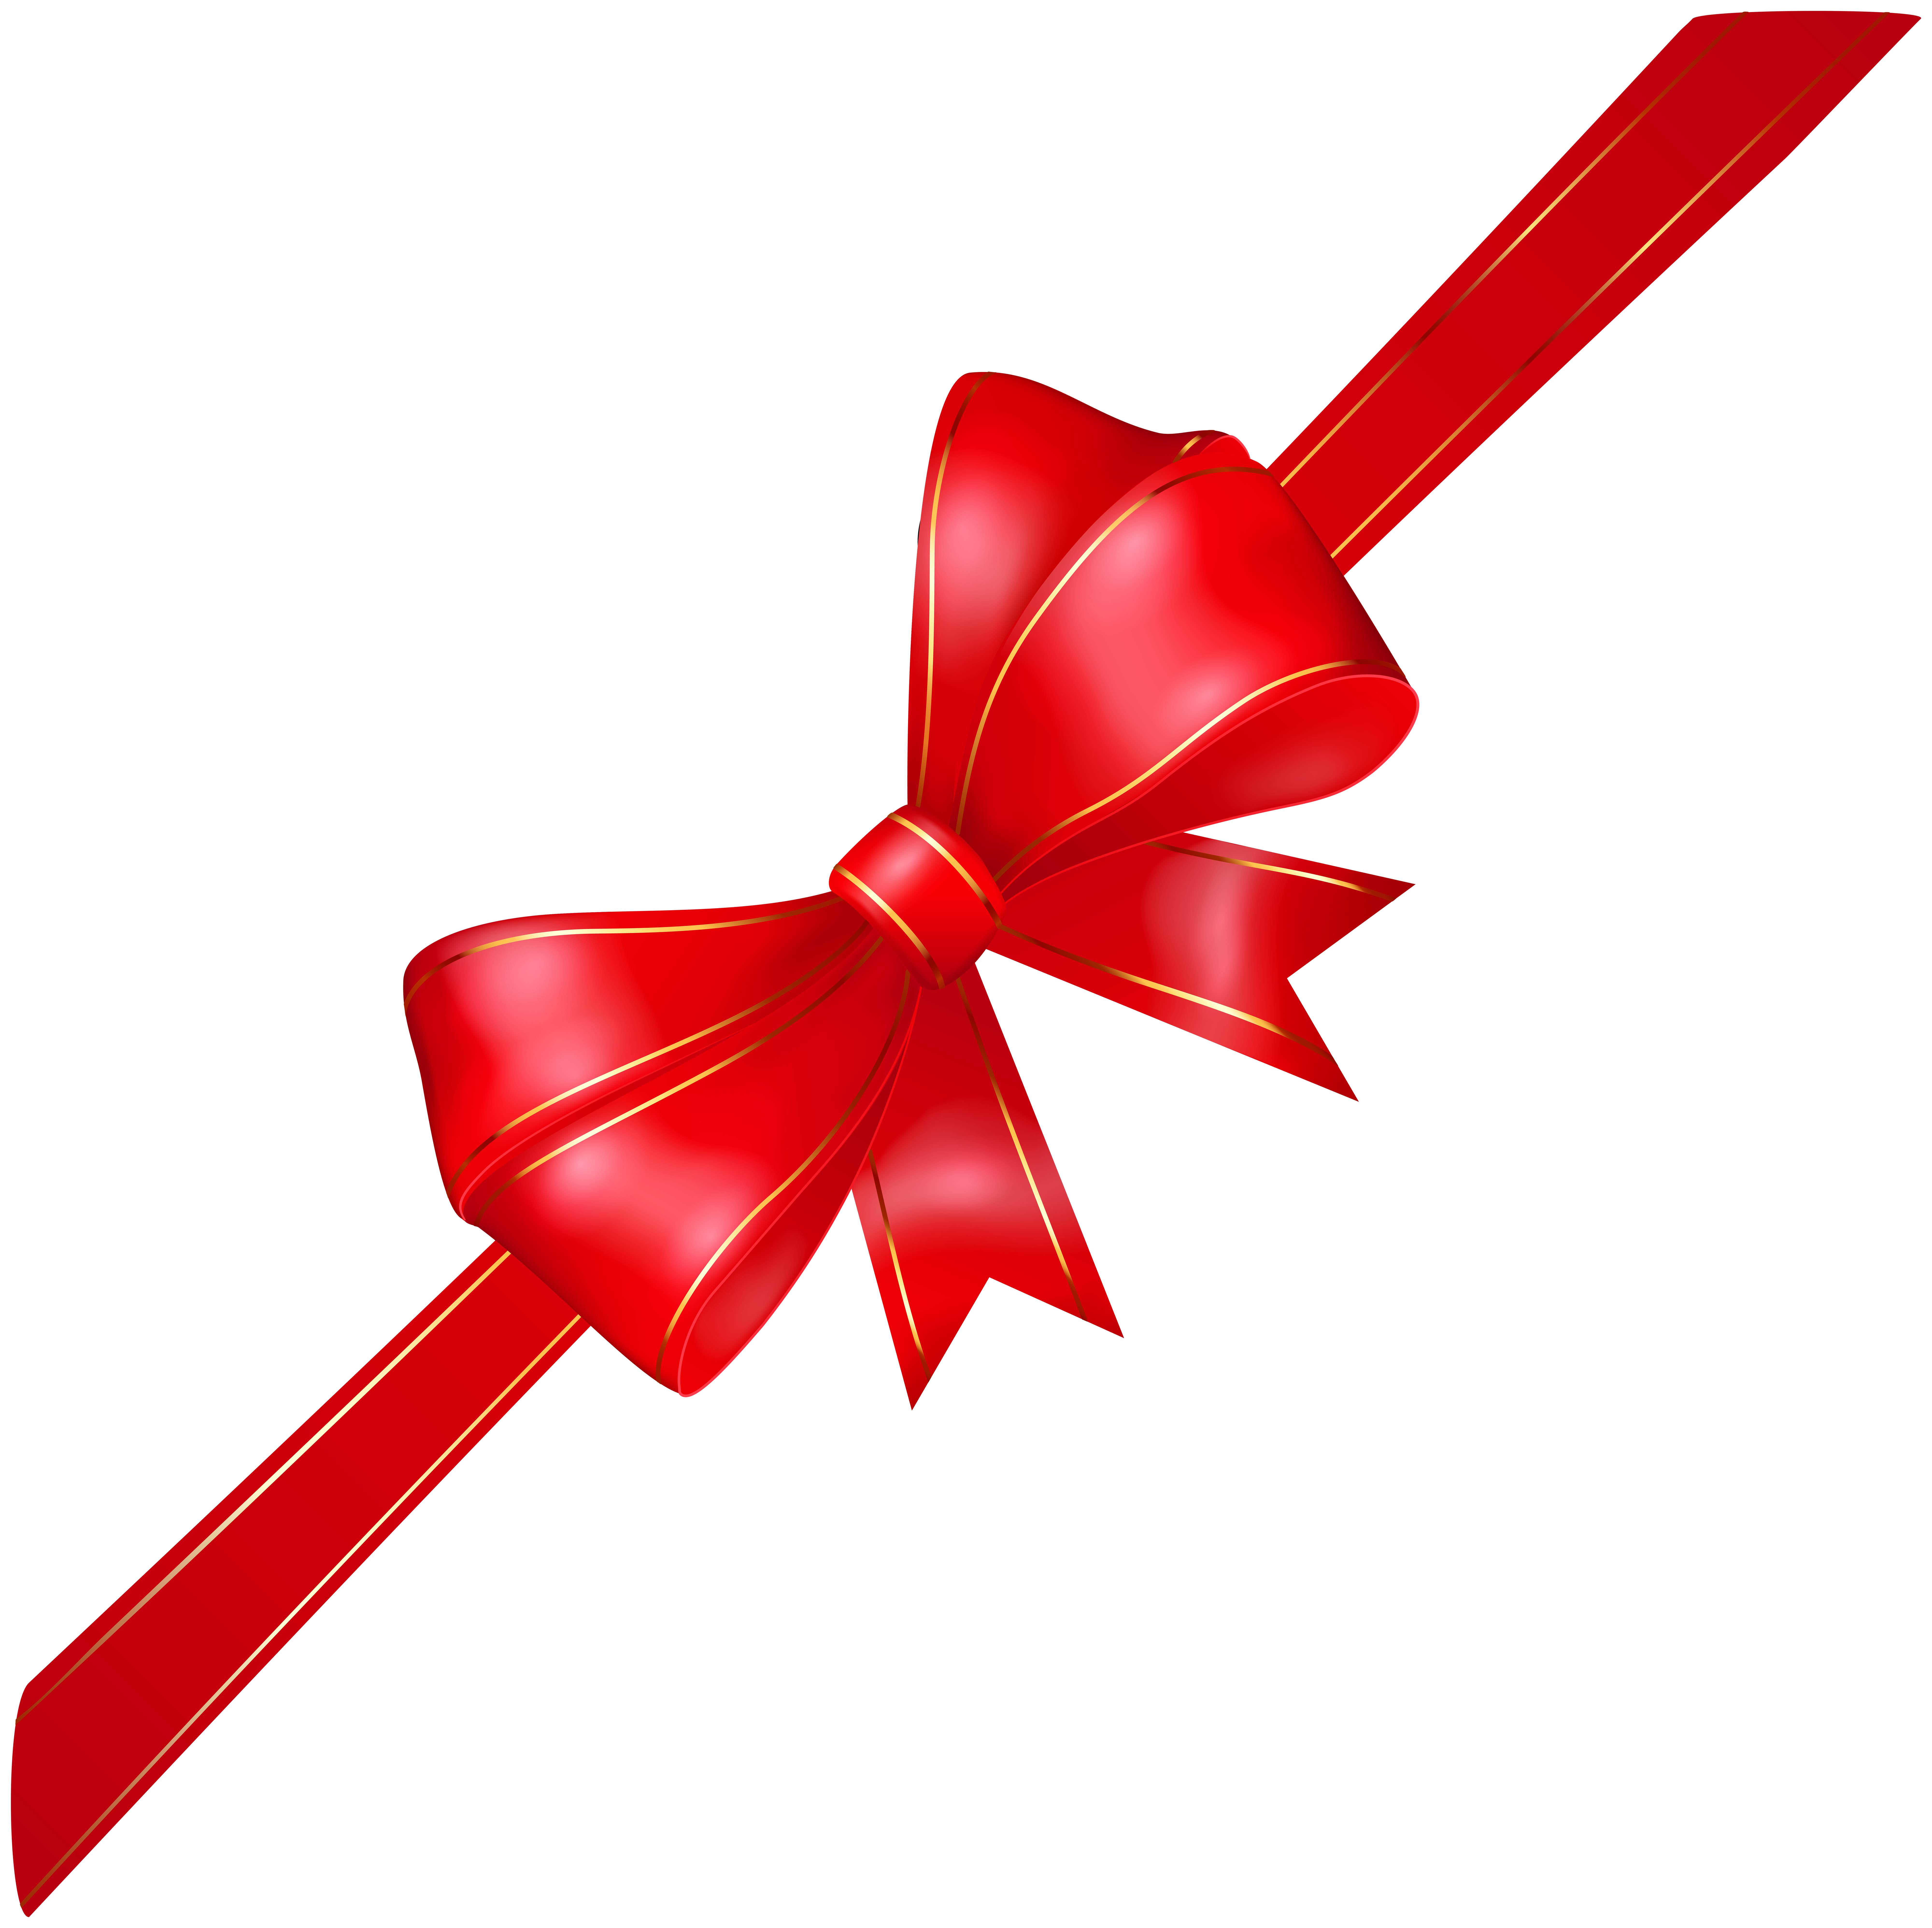 red bow background tumblr - photo #46